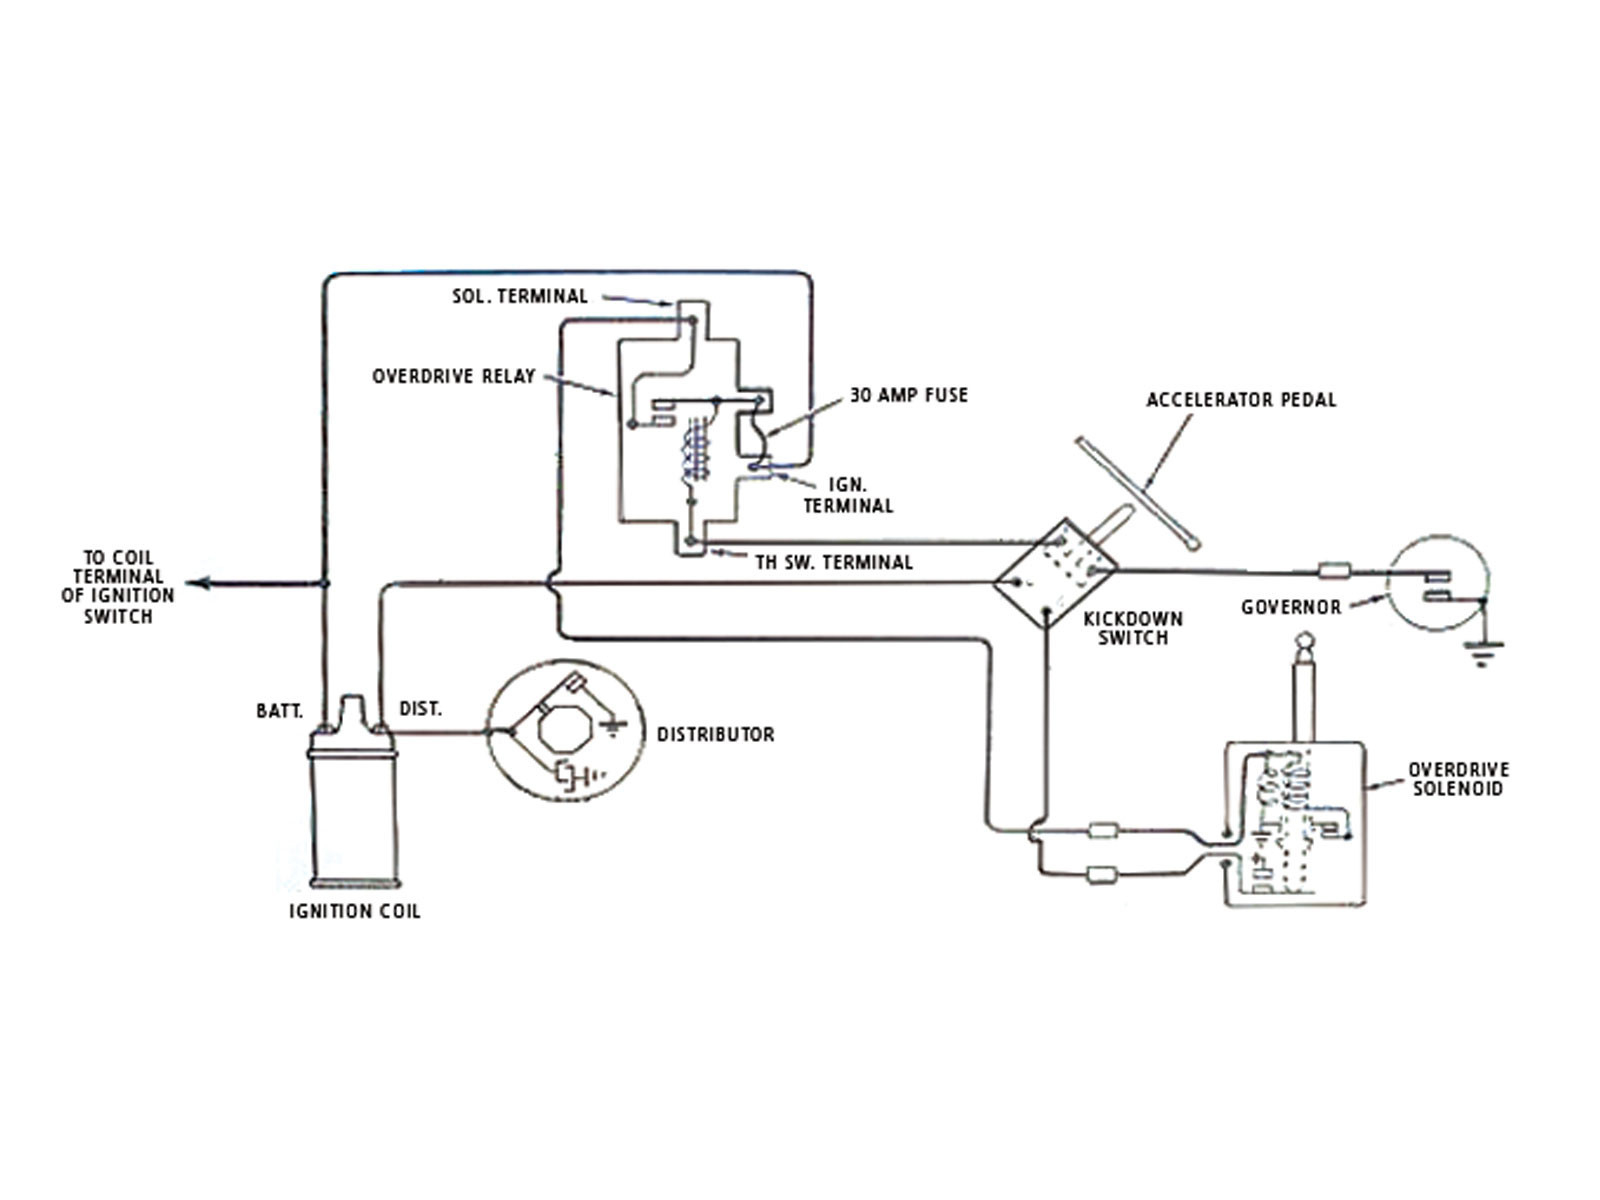 12 pin relay wiring diagram latest for automotive a free download feet and legs safety switch gallery sample